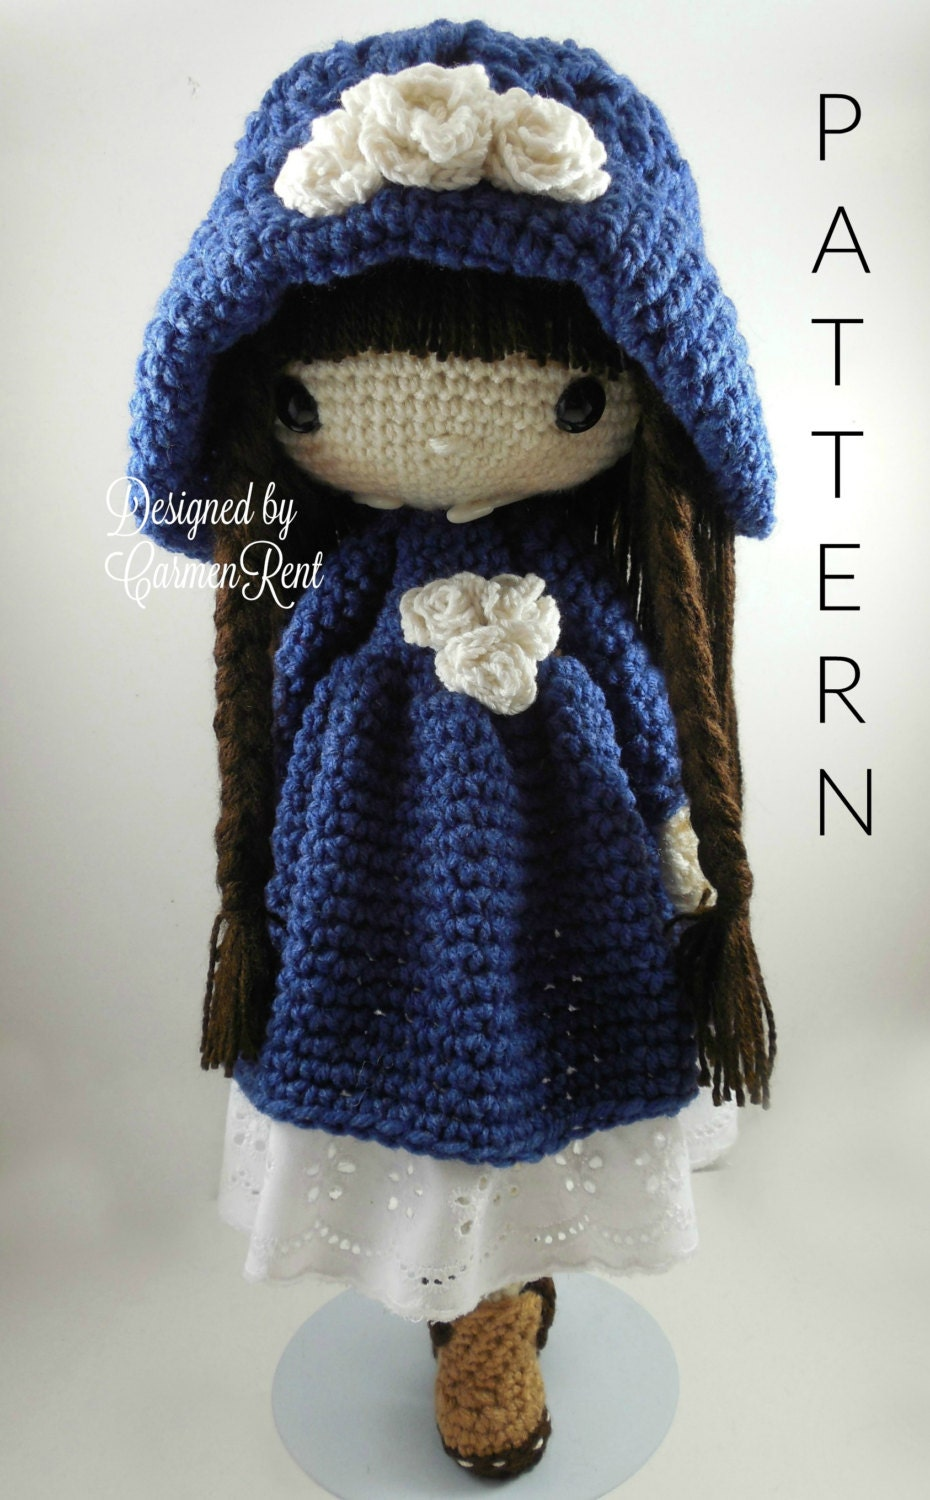 Amigurumi Doll How To : Matilda amigurumi doll crochet pattern pdf